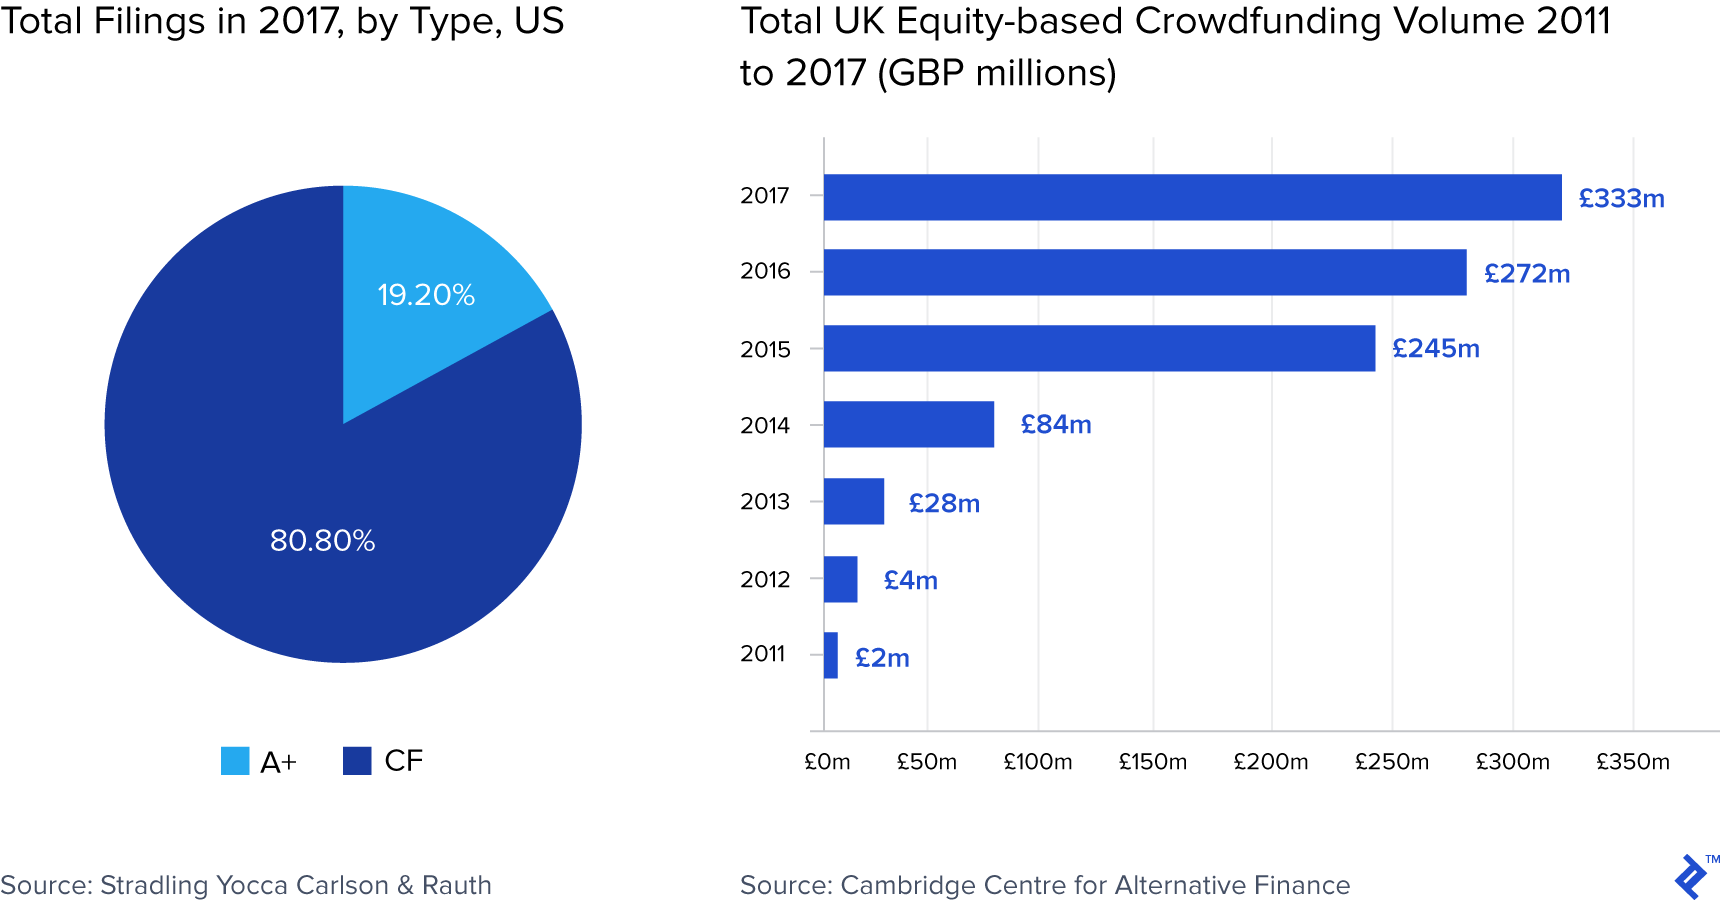 Chart of total filings in 2017, by type in the United States, compared with total UK equity-based crowdfunding volume between 2011 and 2017, in millions of pounds